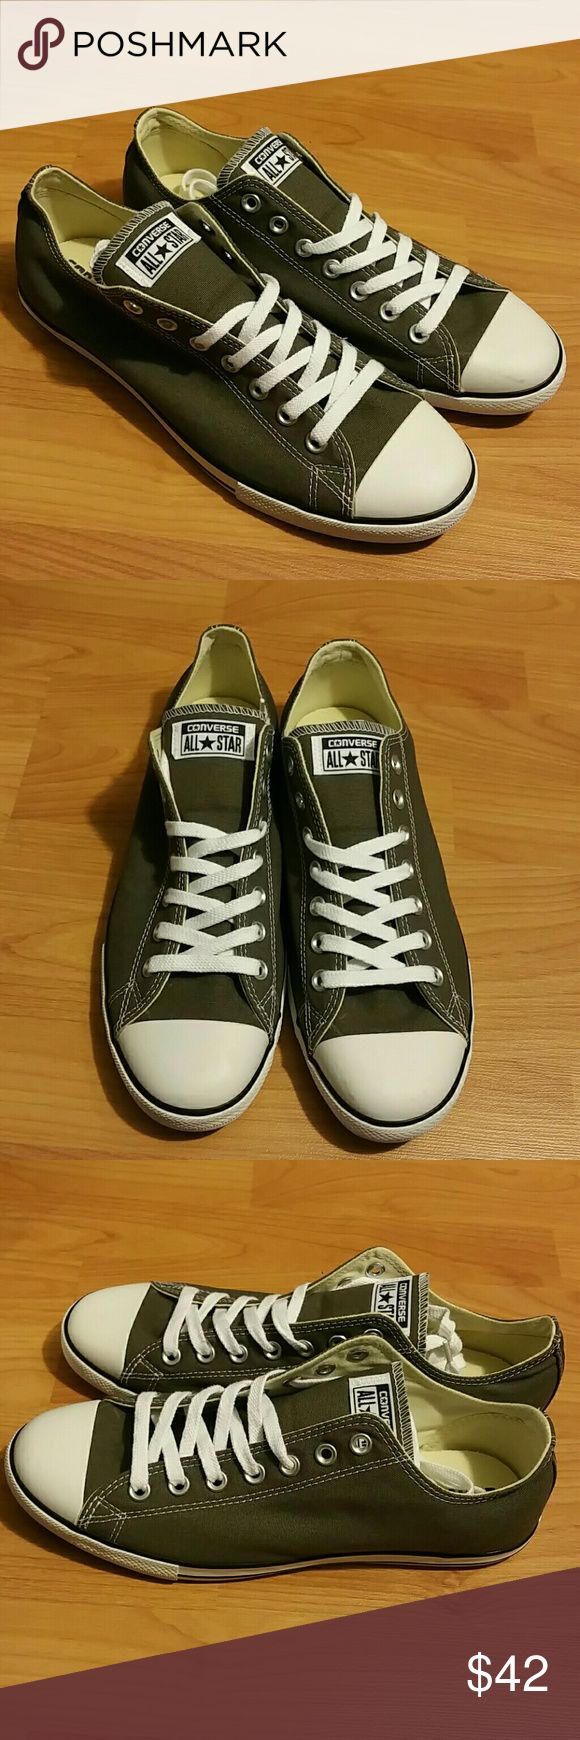 Mens converse all star New. Size 10. Never worn. Color gray. Converse Shoes Sneakers